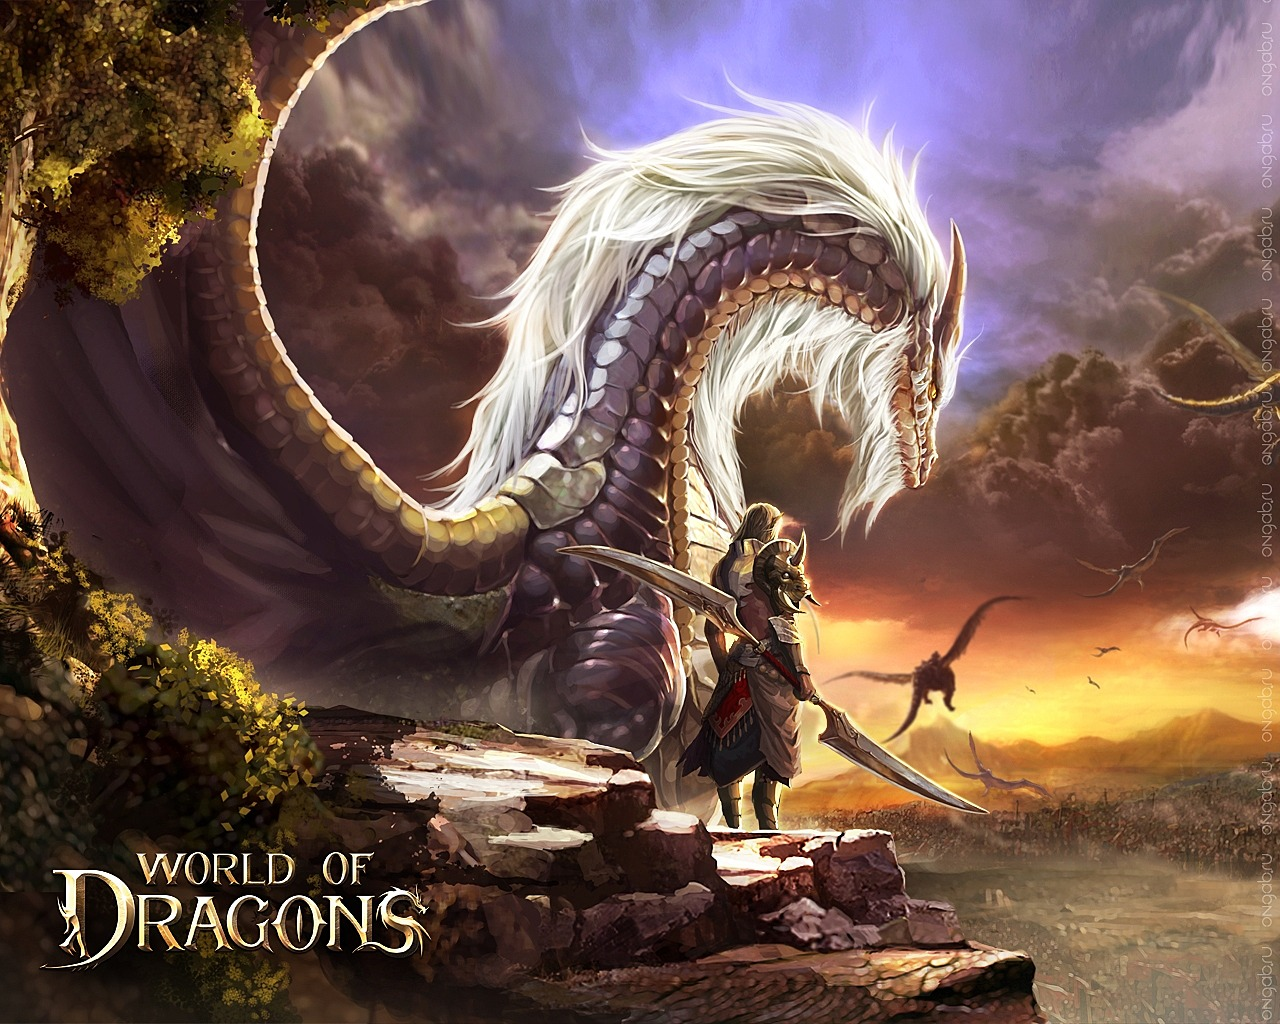 Скриншот HD обои World of Dragons